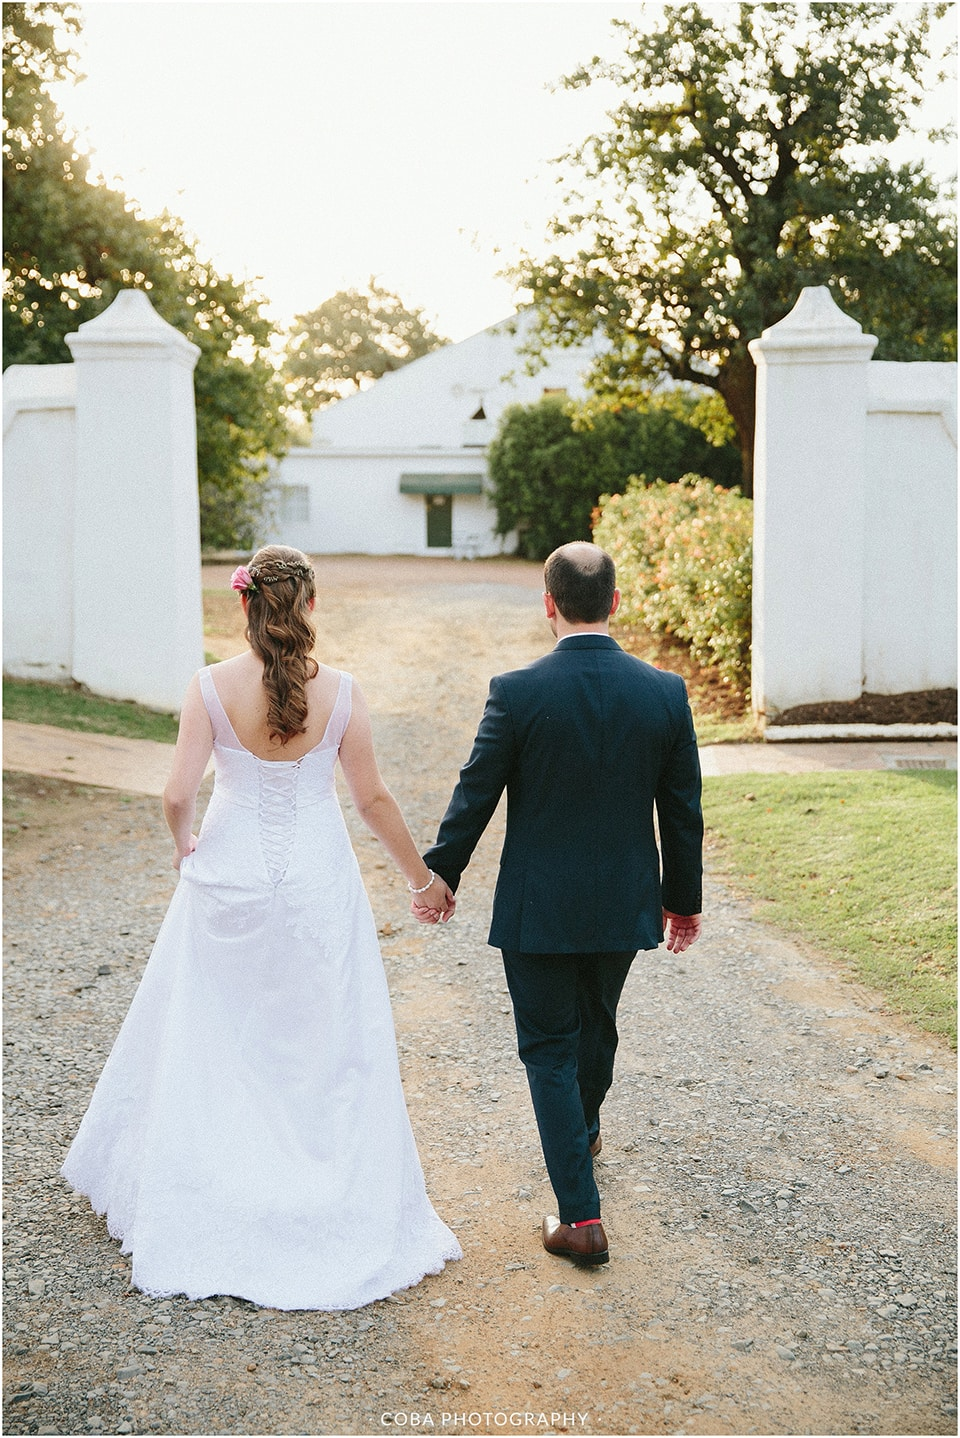 Cobus & Annerie - Towerbosch - Coba Photography (132)